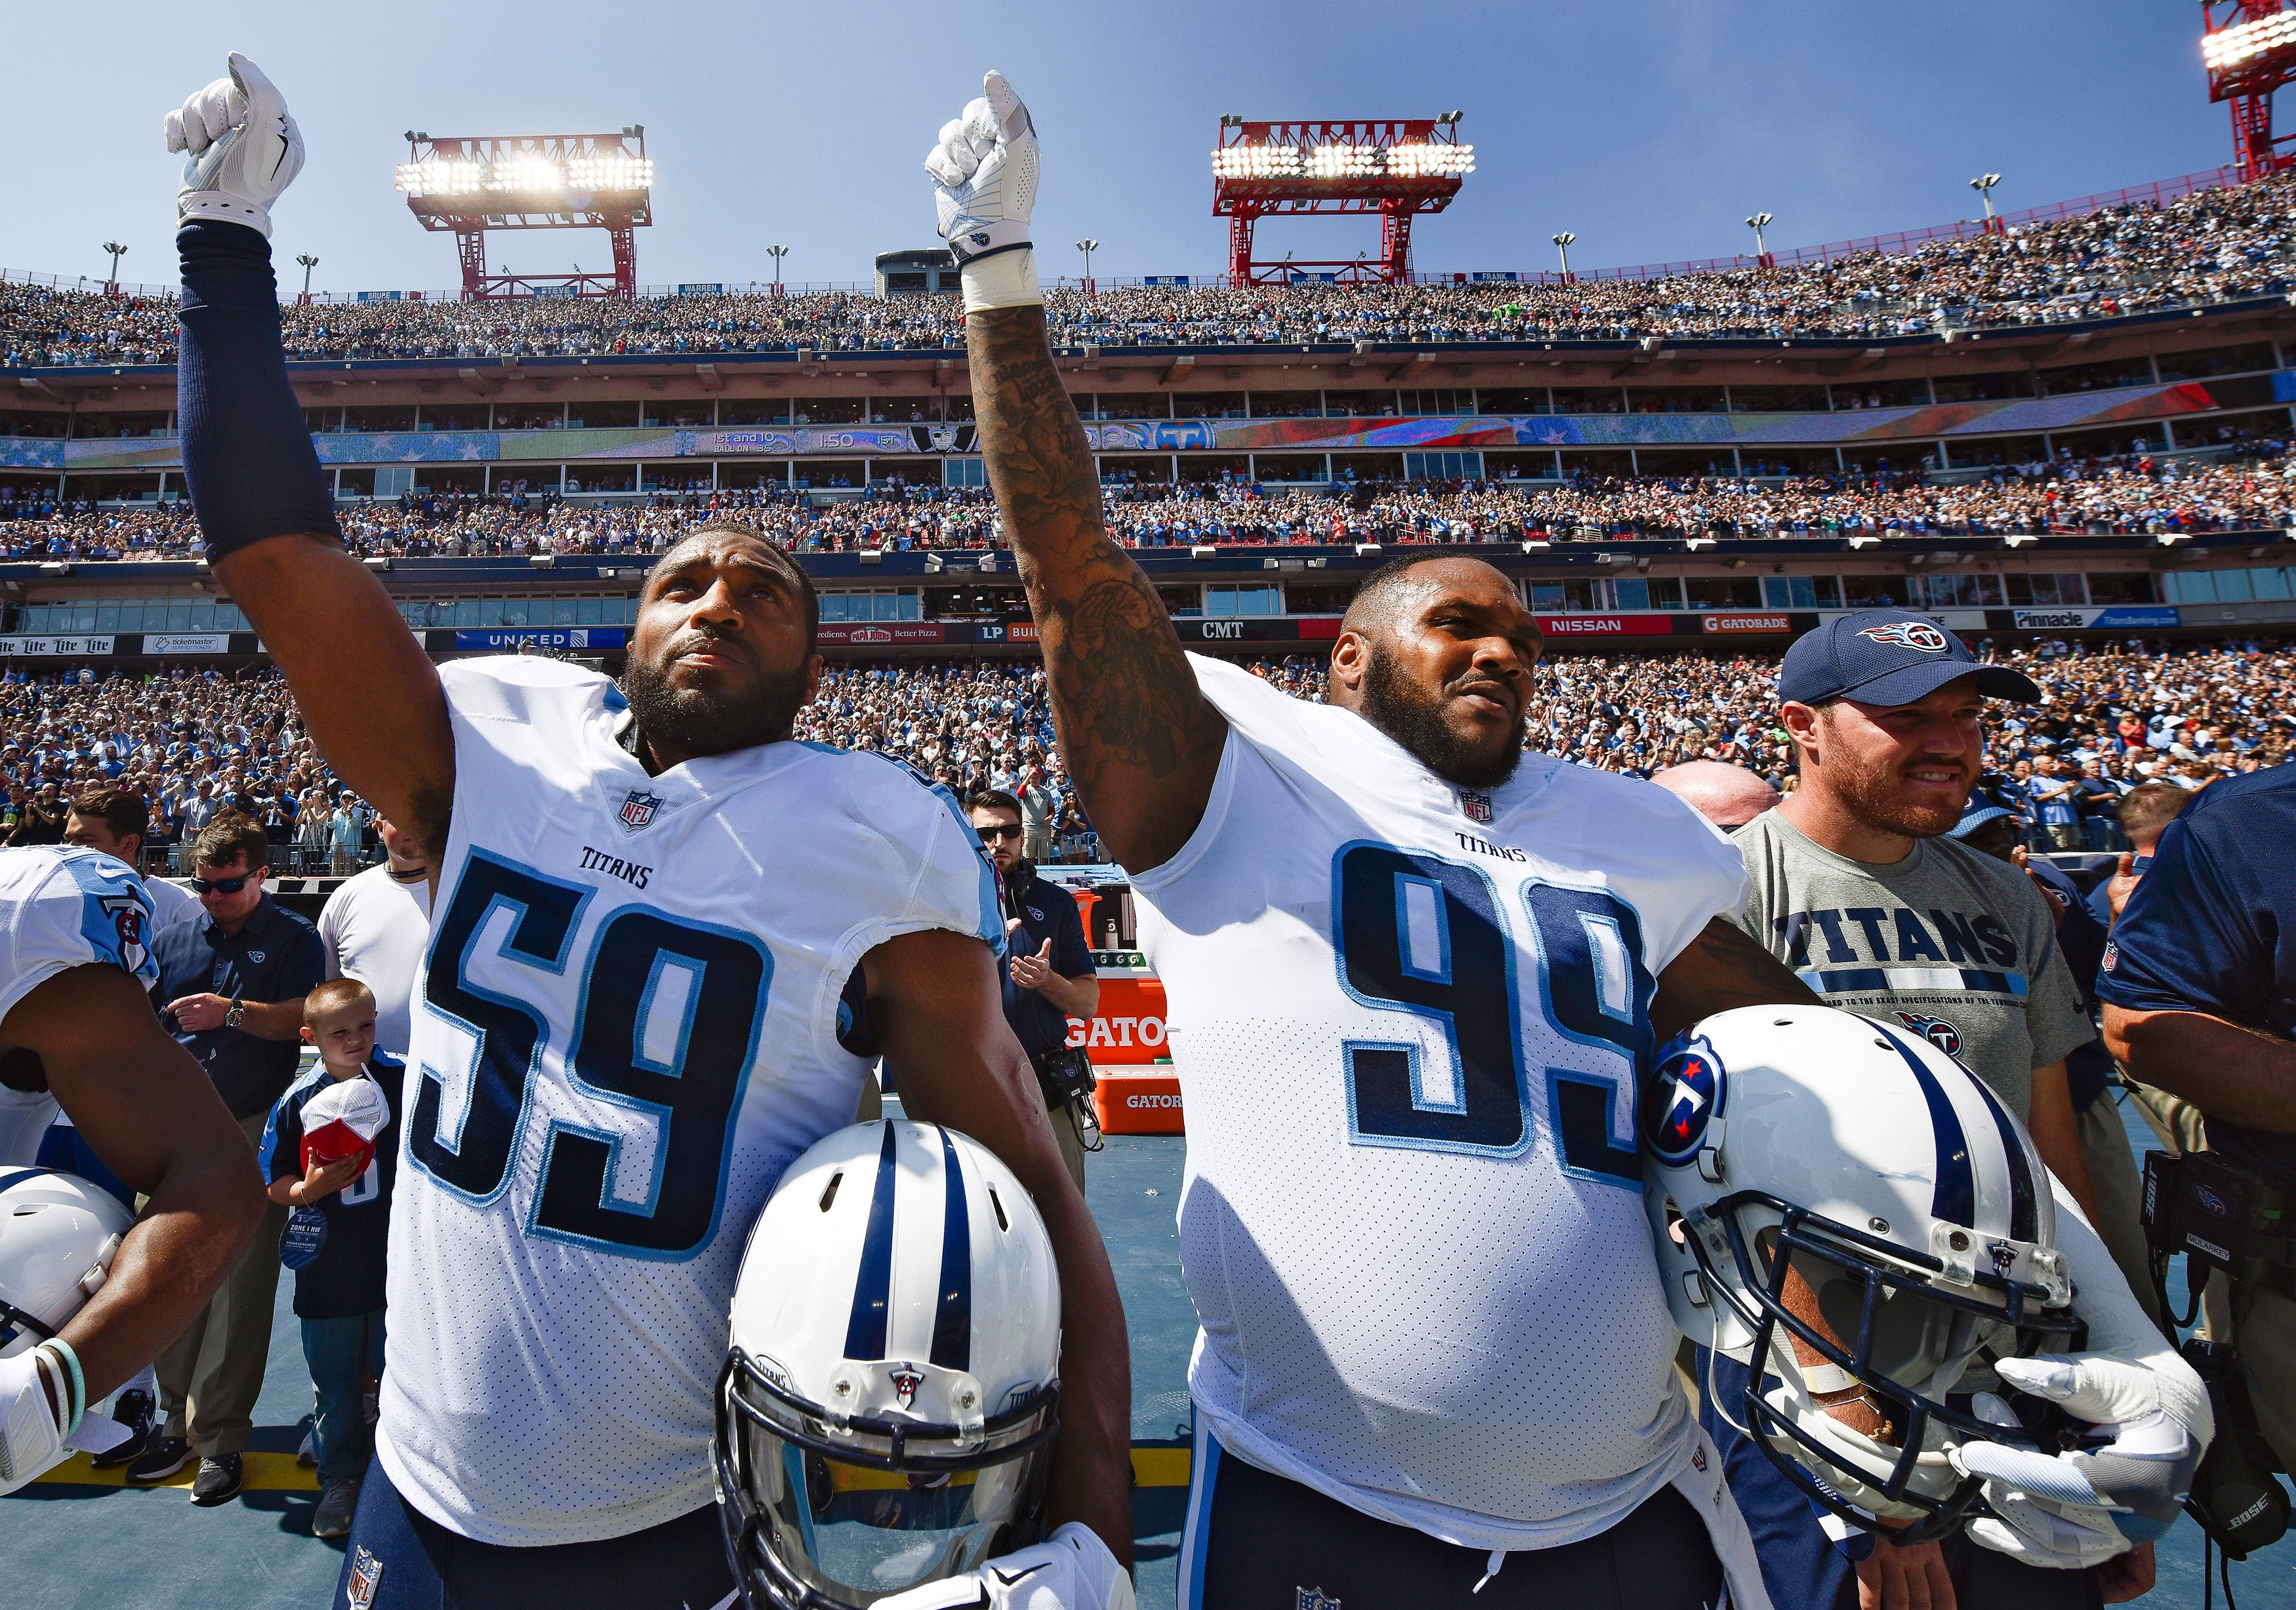 Tennessee lawmaker threatens to give up season tickets if Titans protest during national anthem